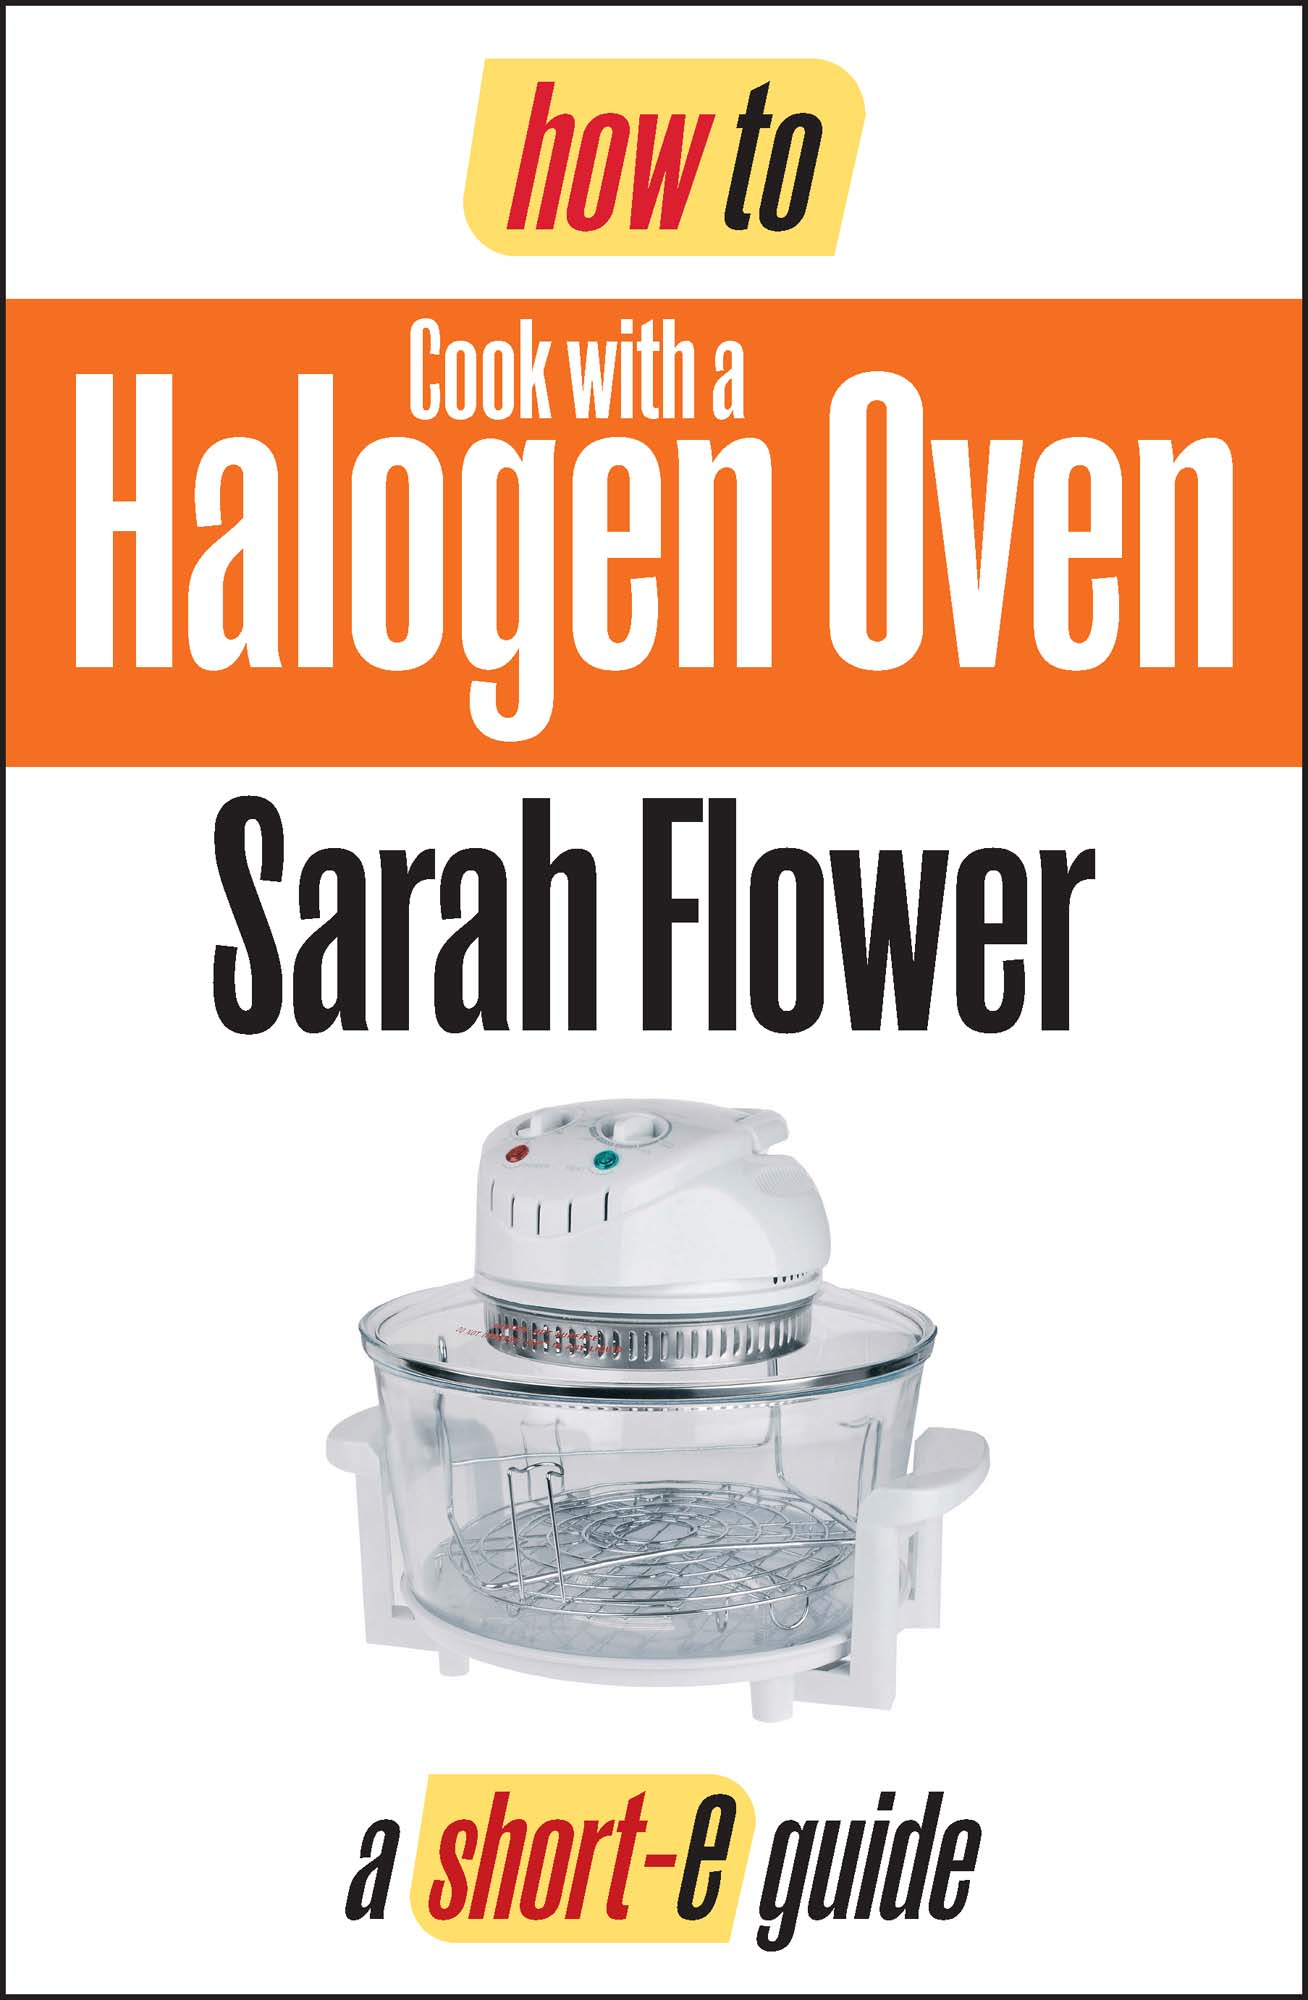 How To Cook with a Halogen Oven (Short-e Guide) By: Sarah Flower